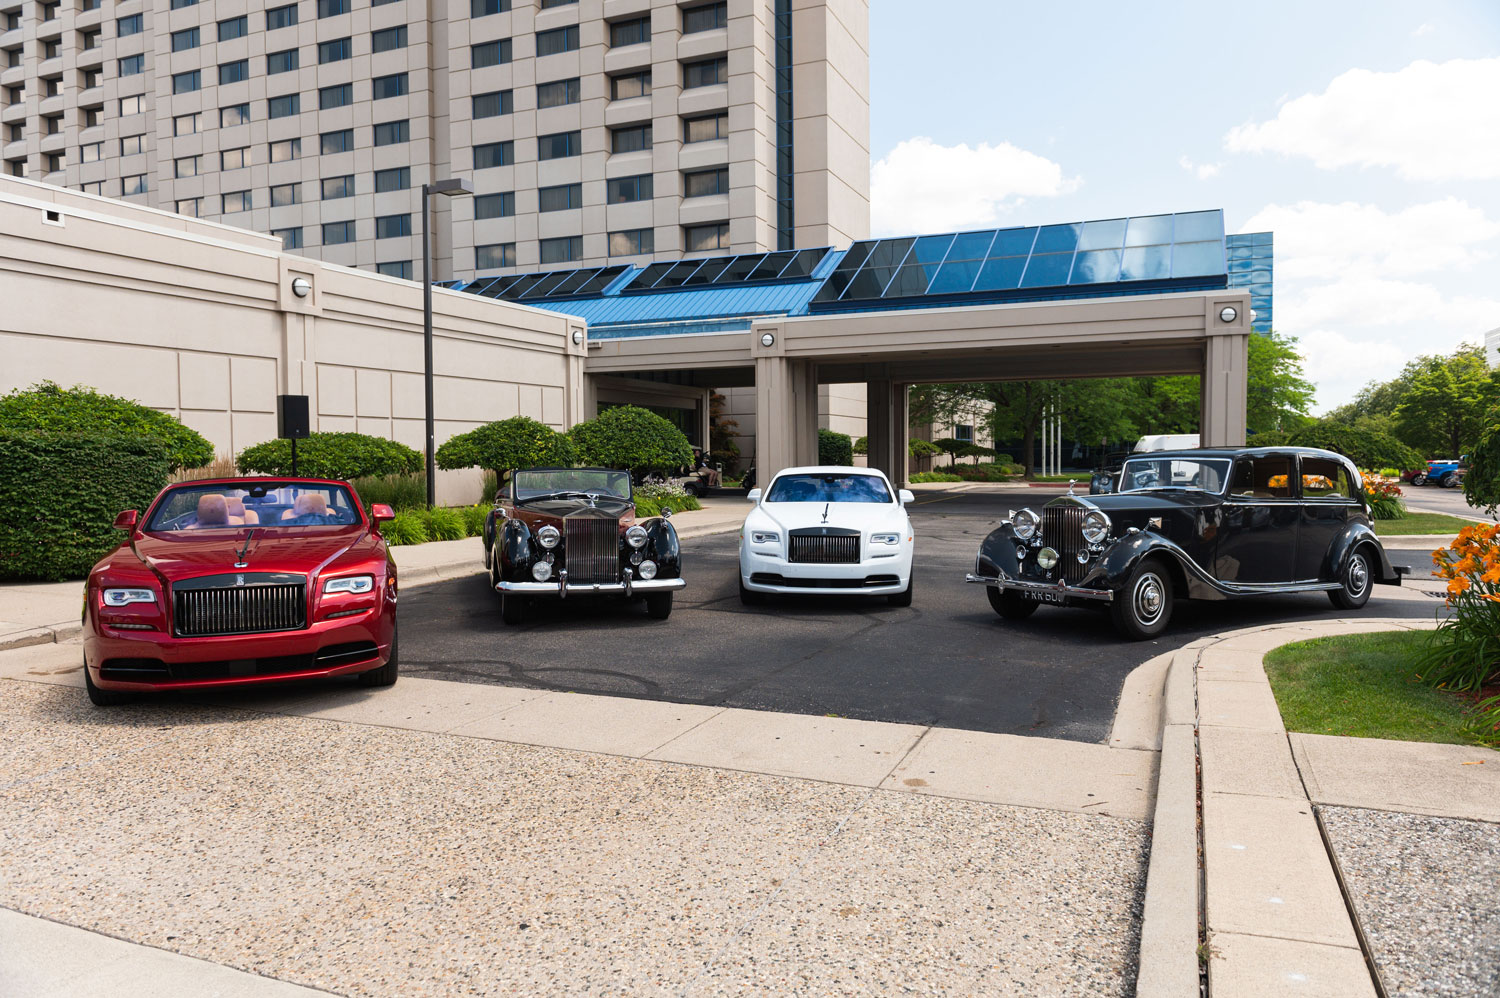 Rolls Royce Group Shot